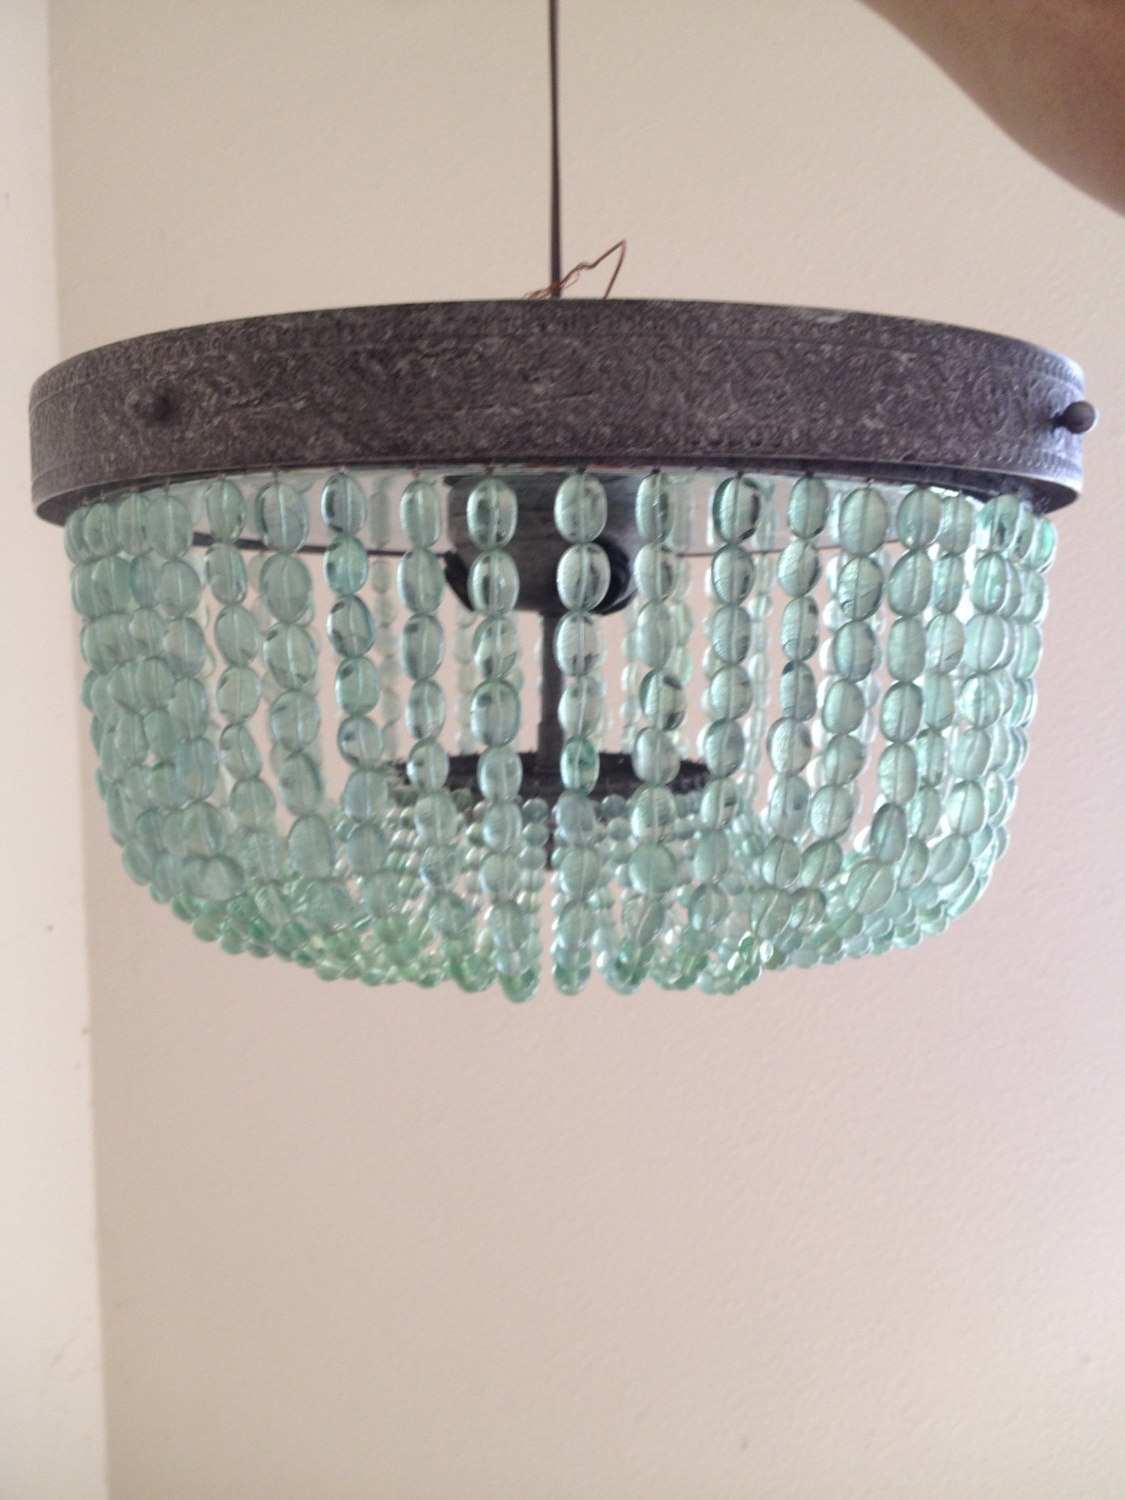 2019 Turquoise Beaded Chandelier Light Fixtures Pertaining To Aqua (light Turquoise, Green) Vintage Style Beaded Chandelier (View 4 of 20)